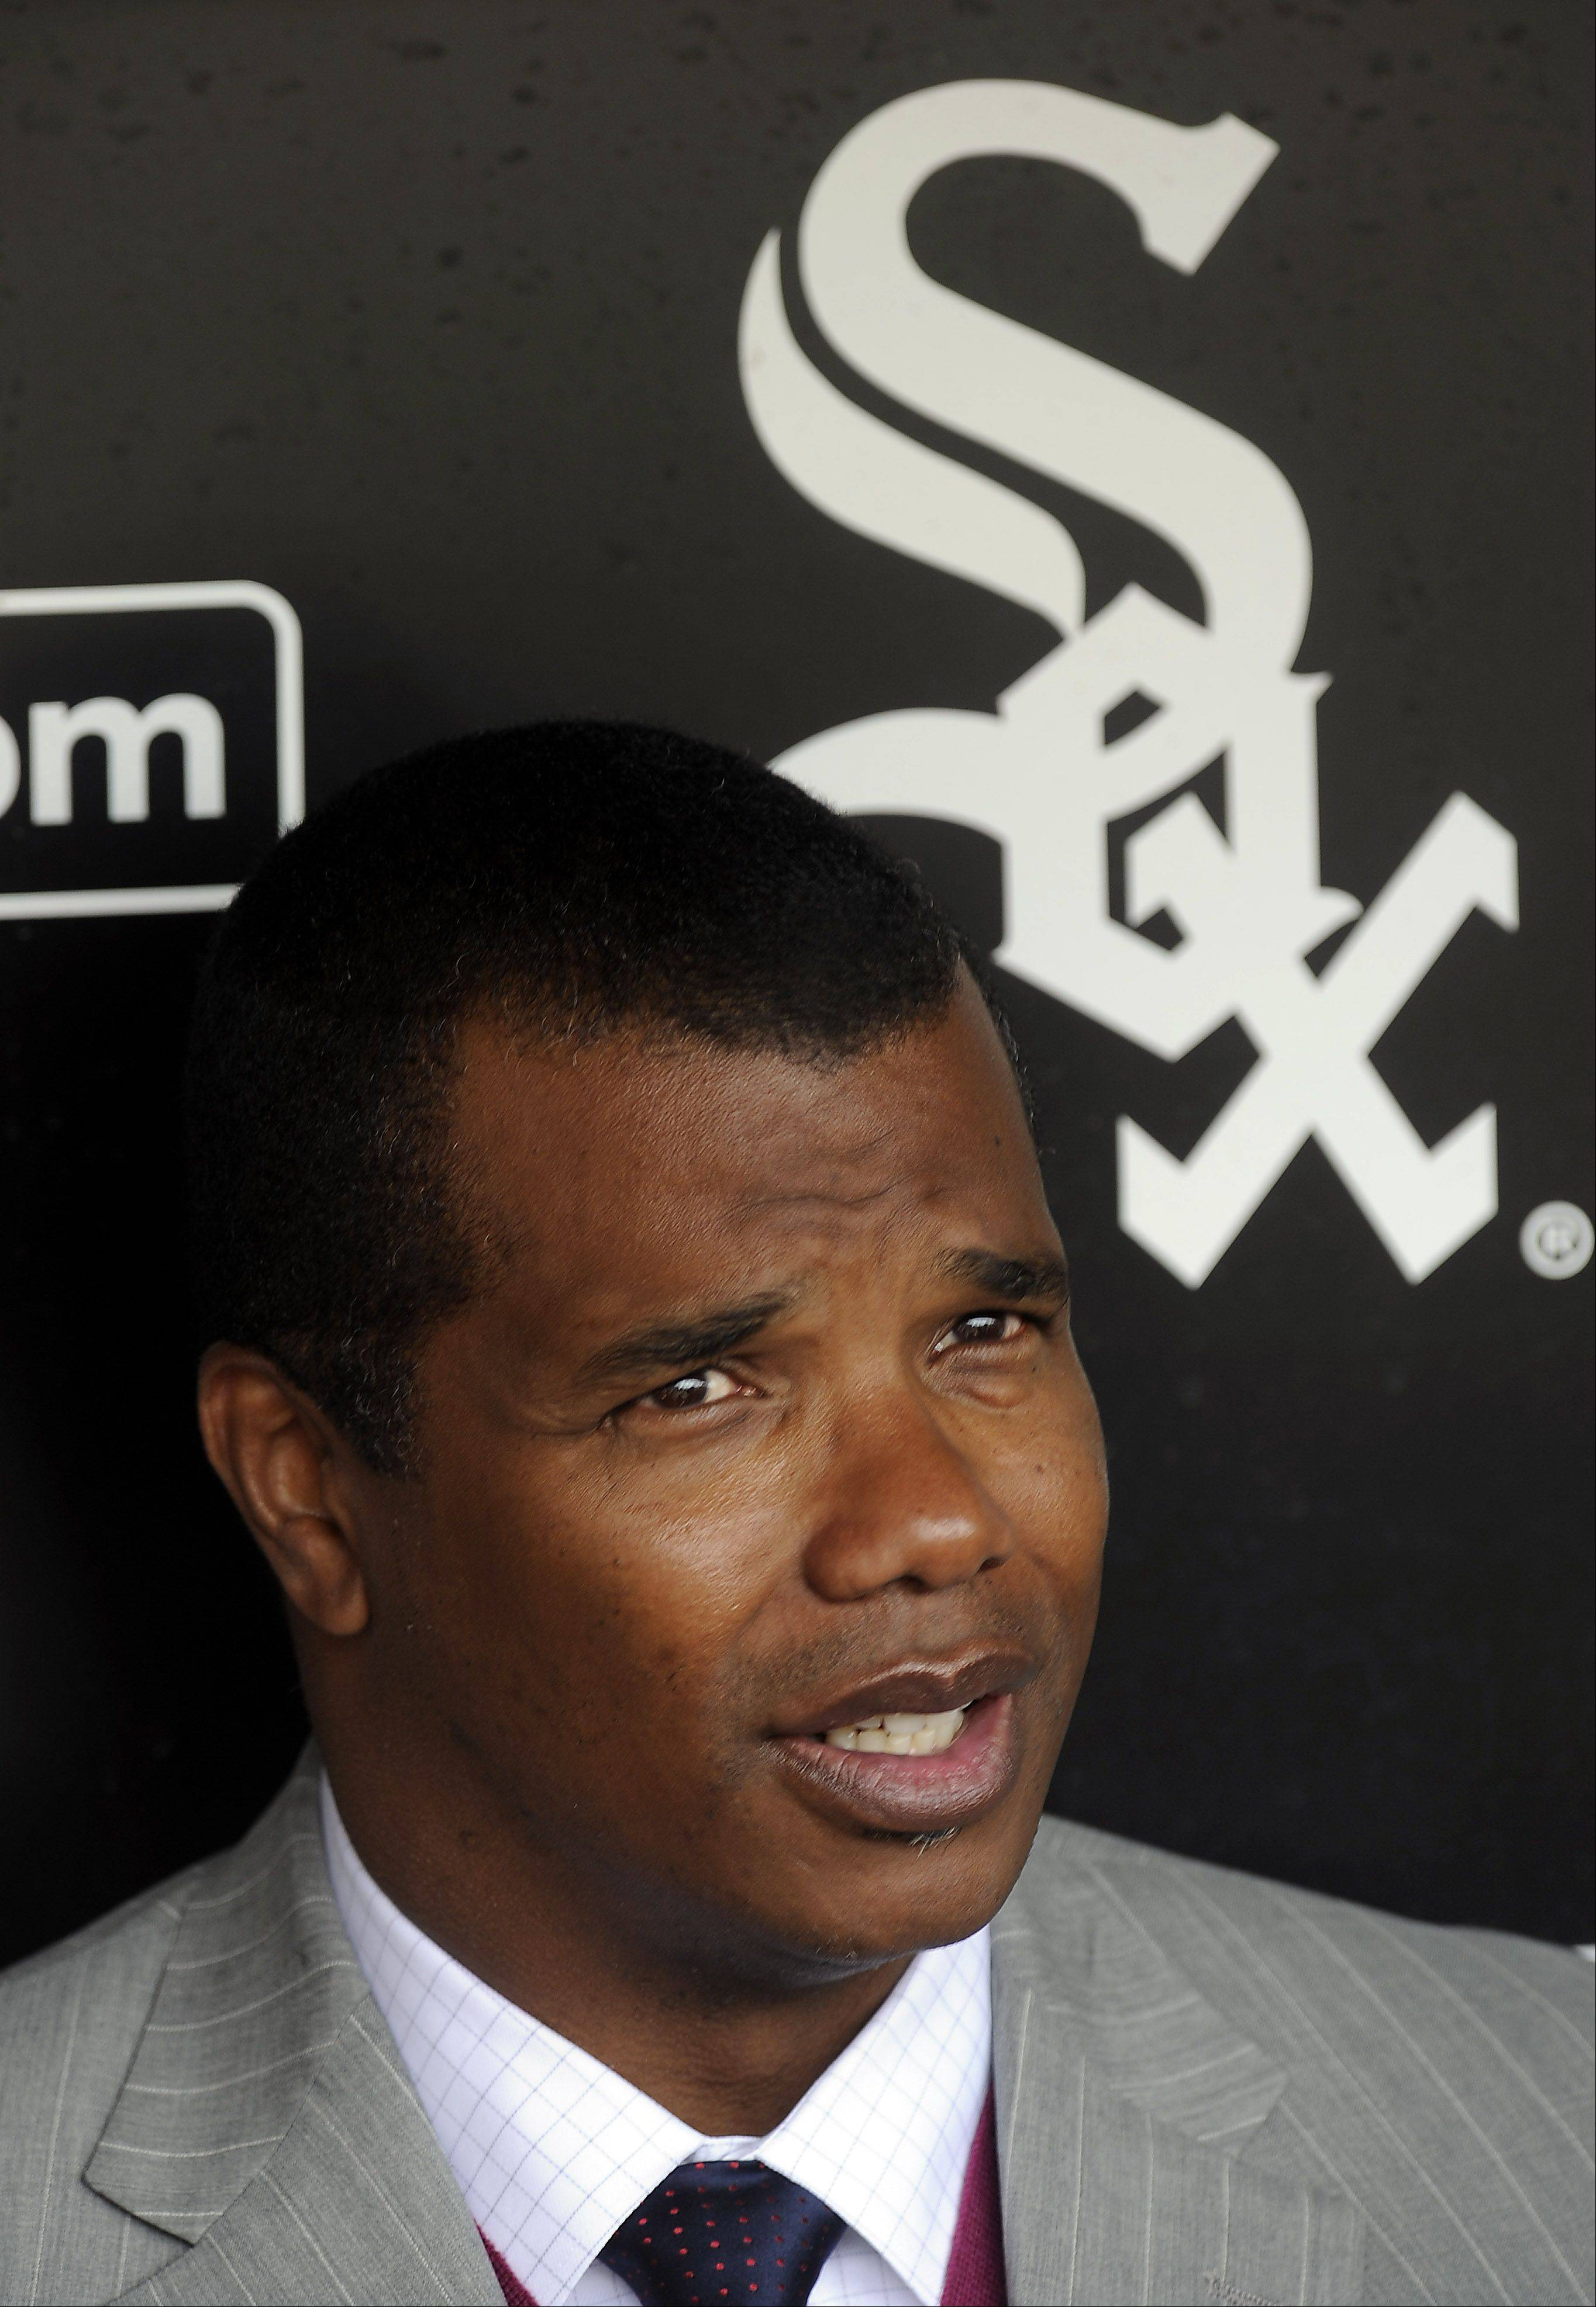 White Sox general manager Kenny Williams has made all the right moves so far this season.